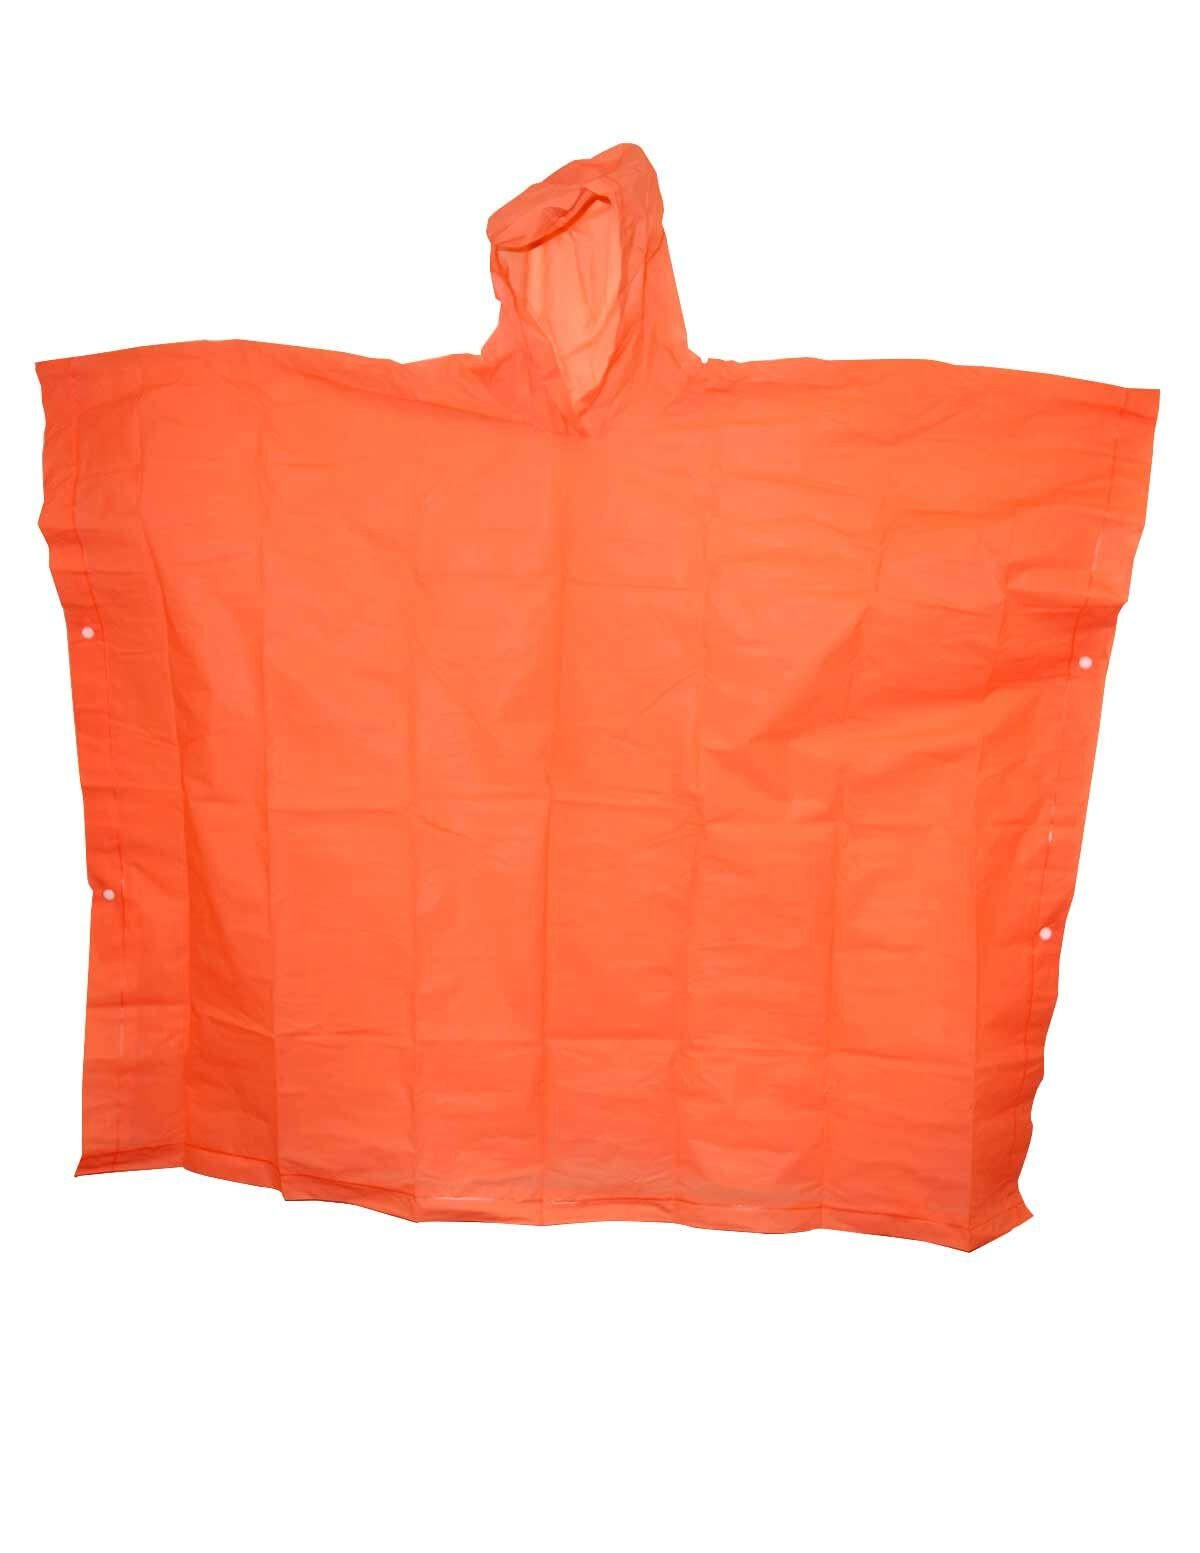 The Weather Station Pullover Adult Poncho, Wide Coverage and Carrying Case, (2 Pack), Orange, One Size by The Weather Station